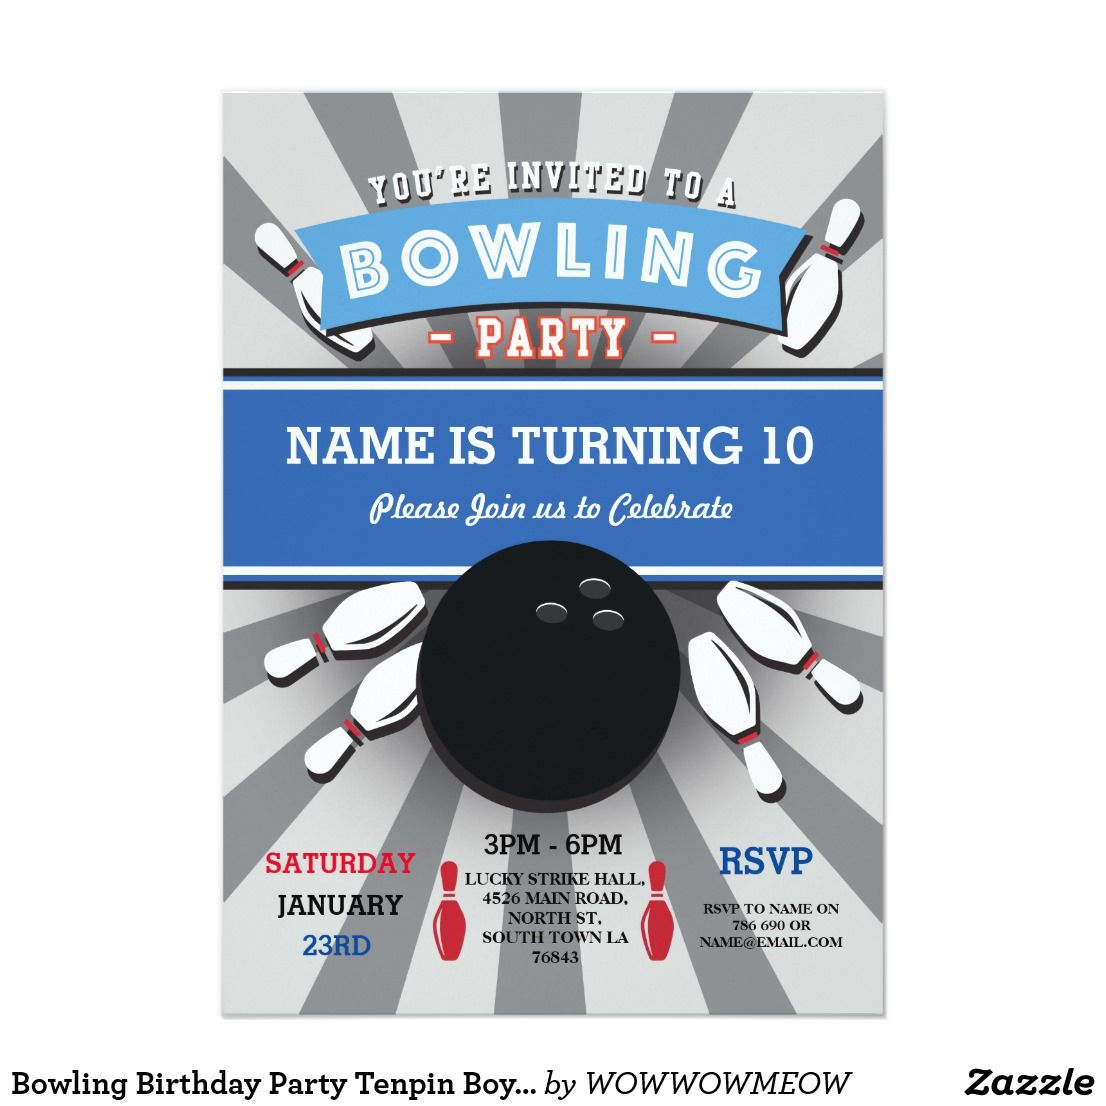 Bowling Birthday Party Tenpin Boys Girls Invite Fun Bowling Party Invitation Perfect For Any Age Bowling Birthday Party Girl Invitations Boy Party Invitations